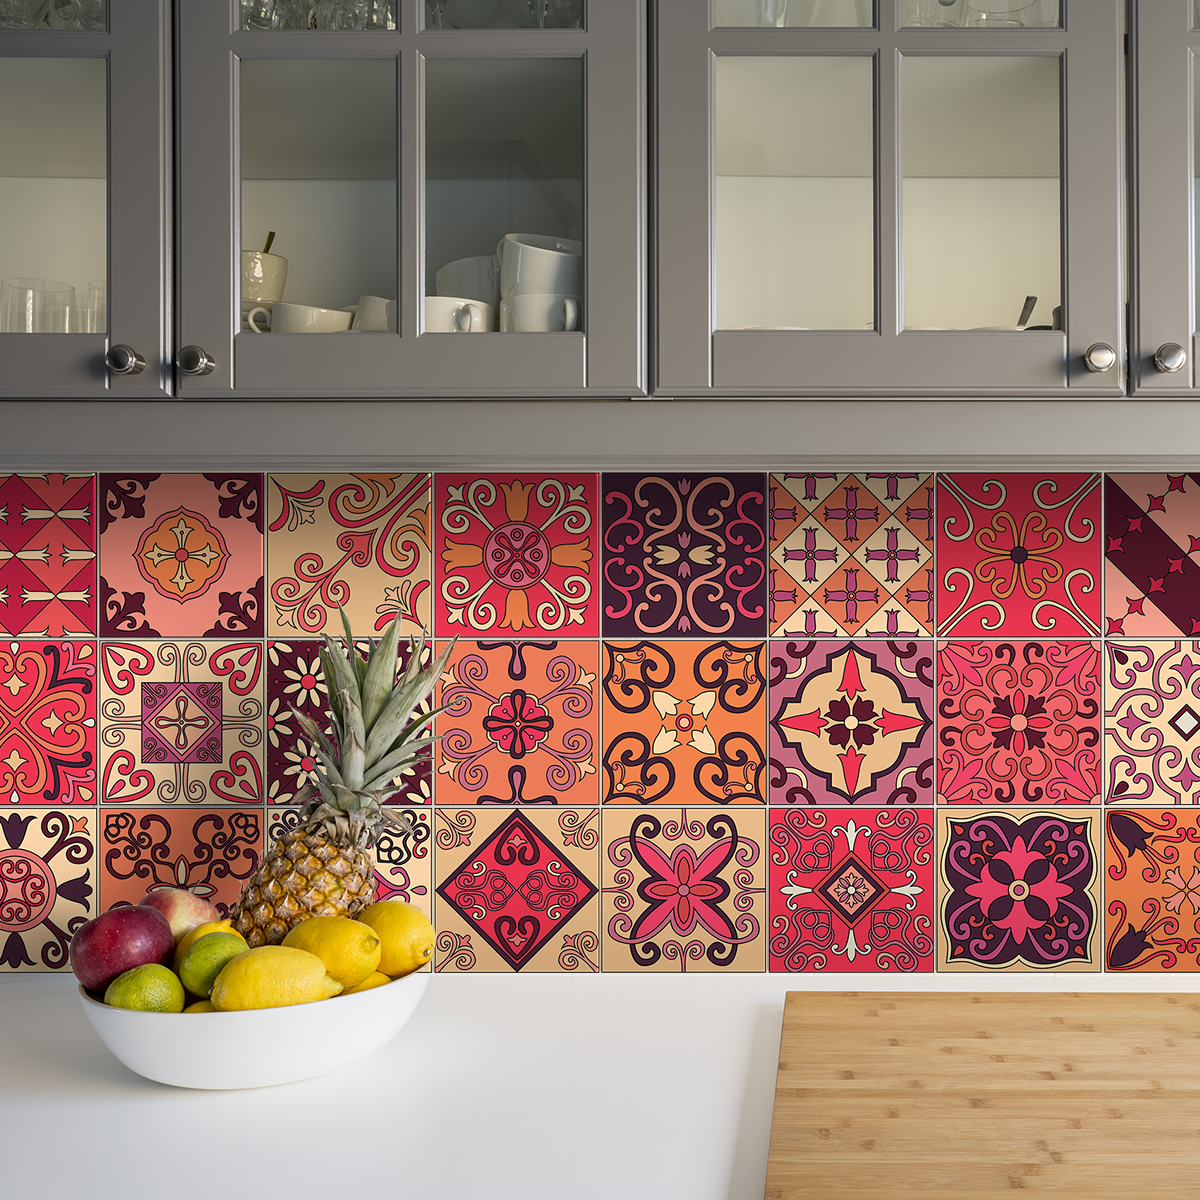 24 stickers carrelages azulejos eraldo cuisine carrelages ambiance sticker - Stickers cuisine carrelage ...